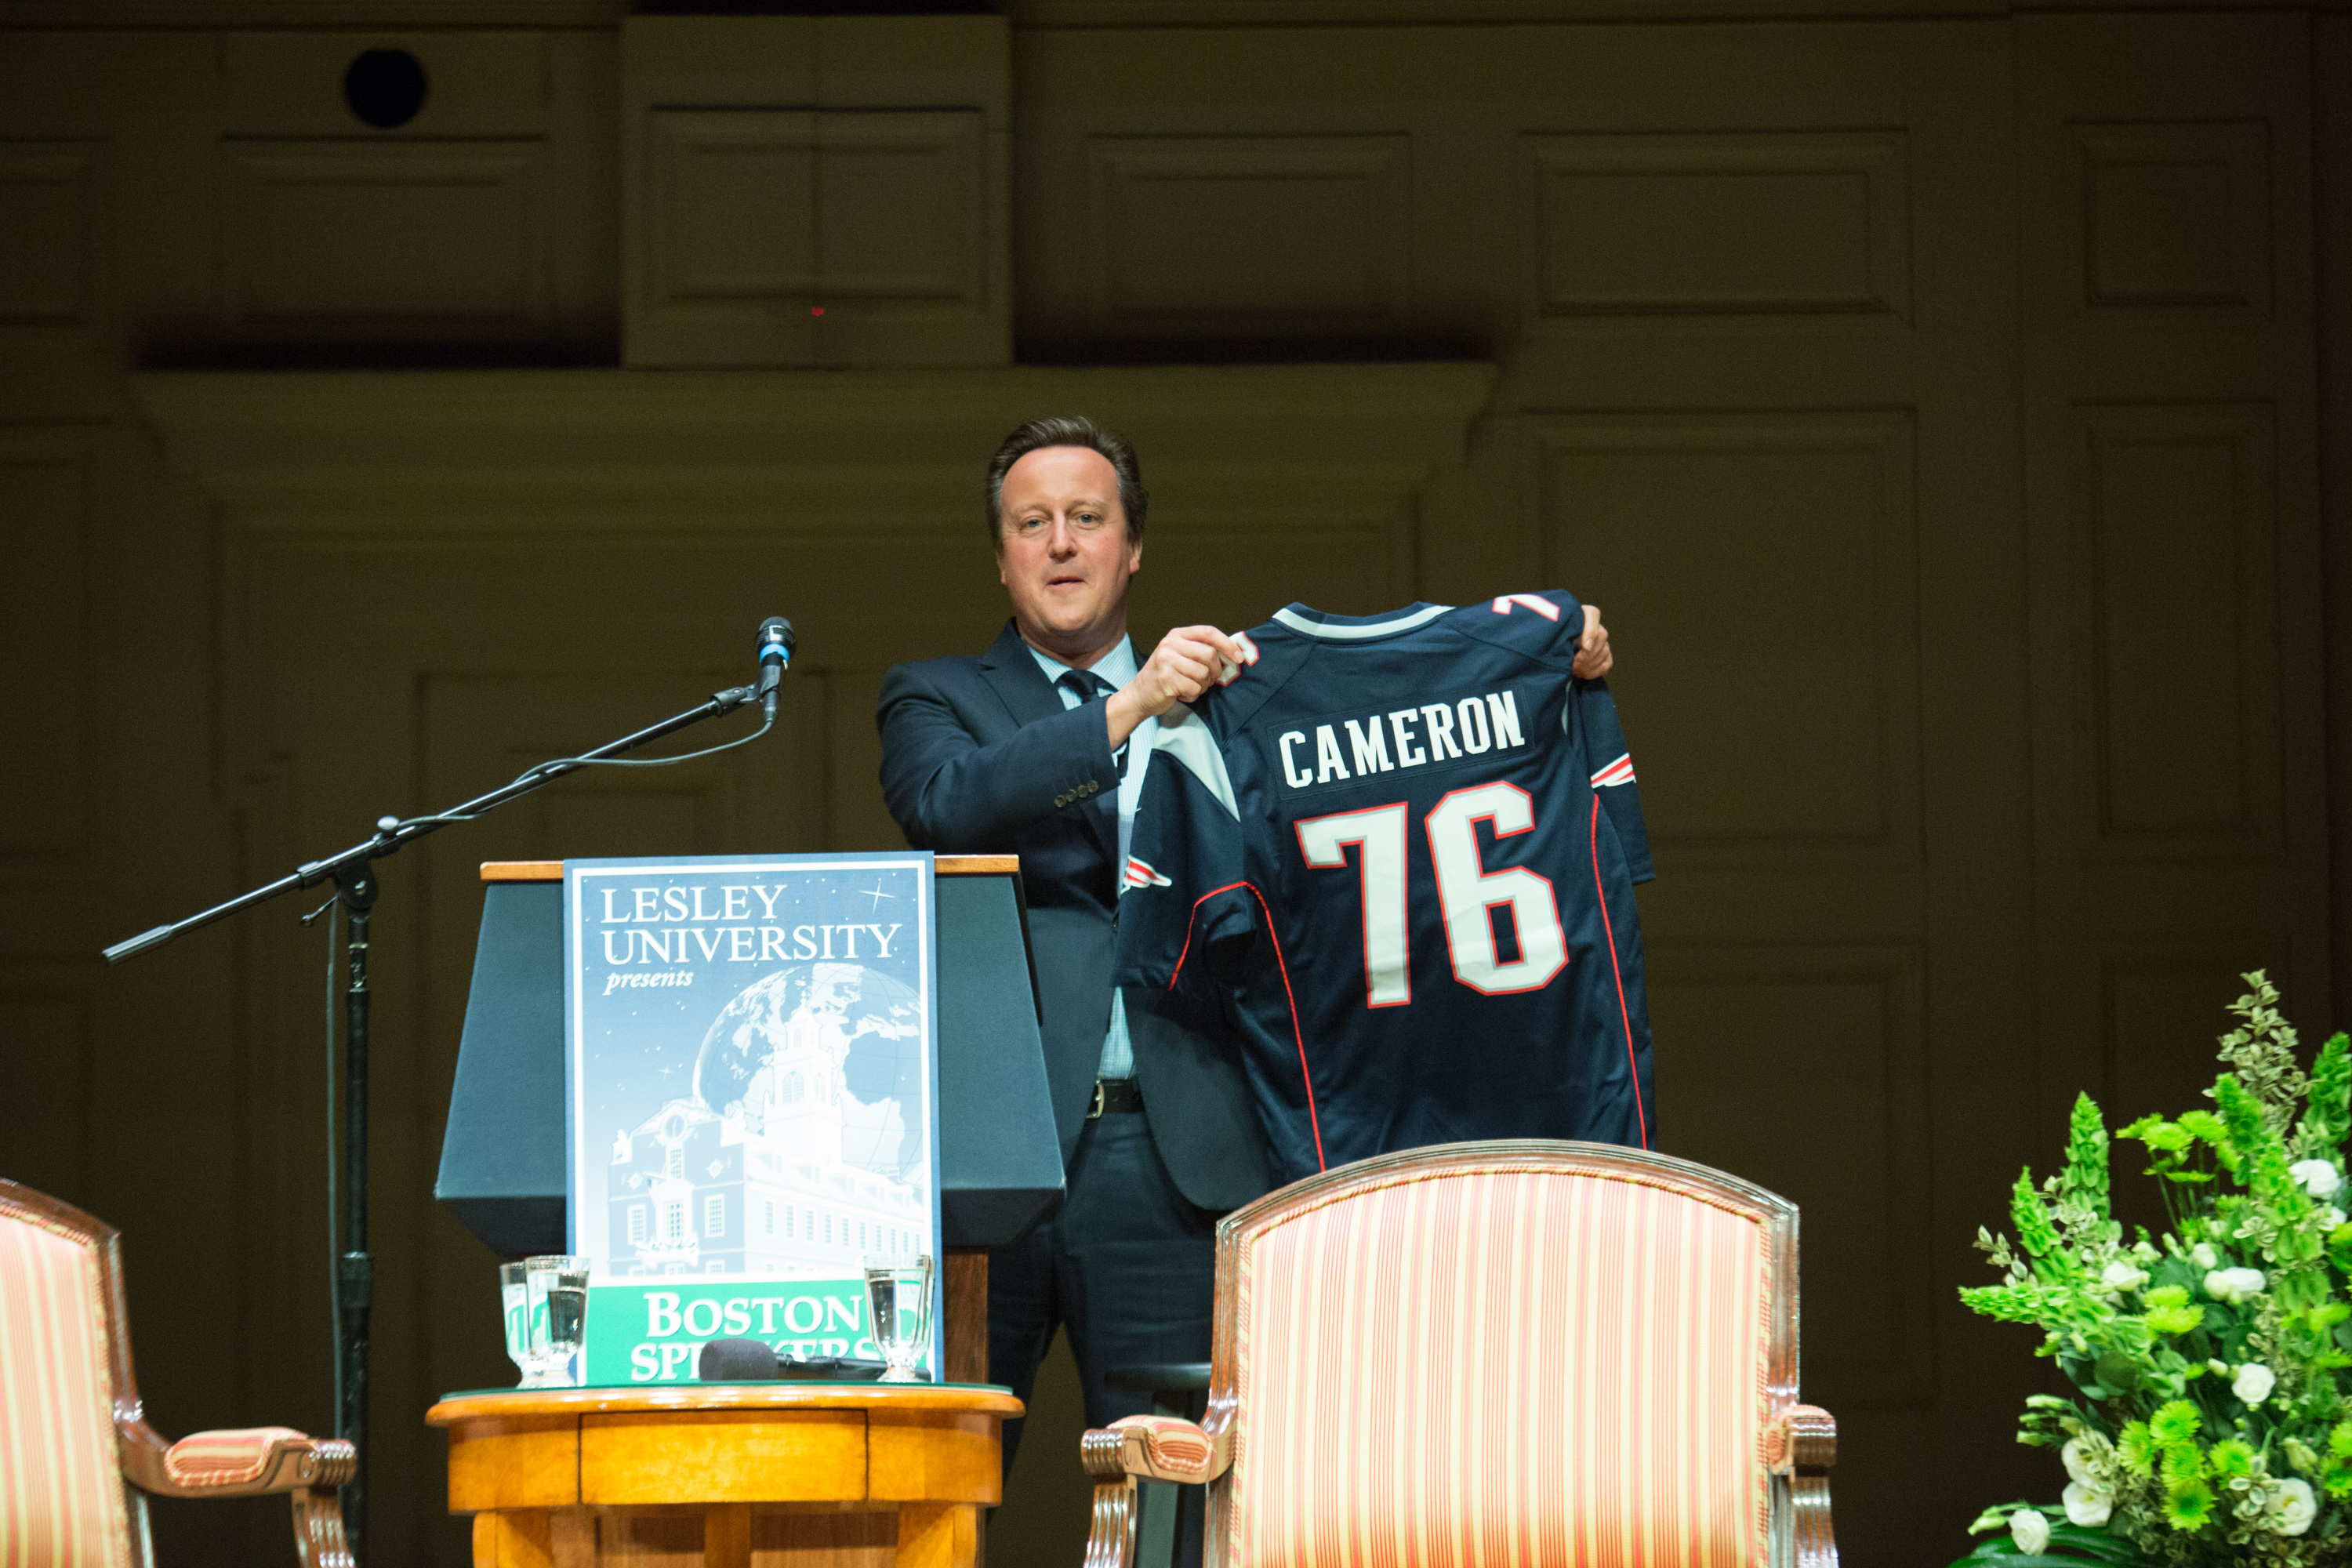 David Cameron holding up Patriots Football Jersey